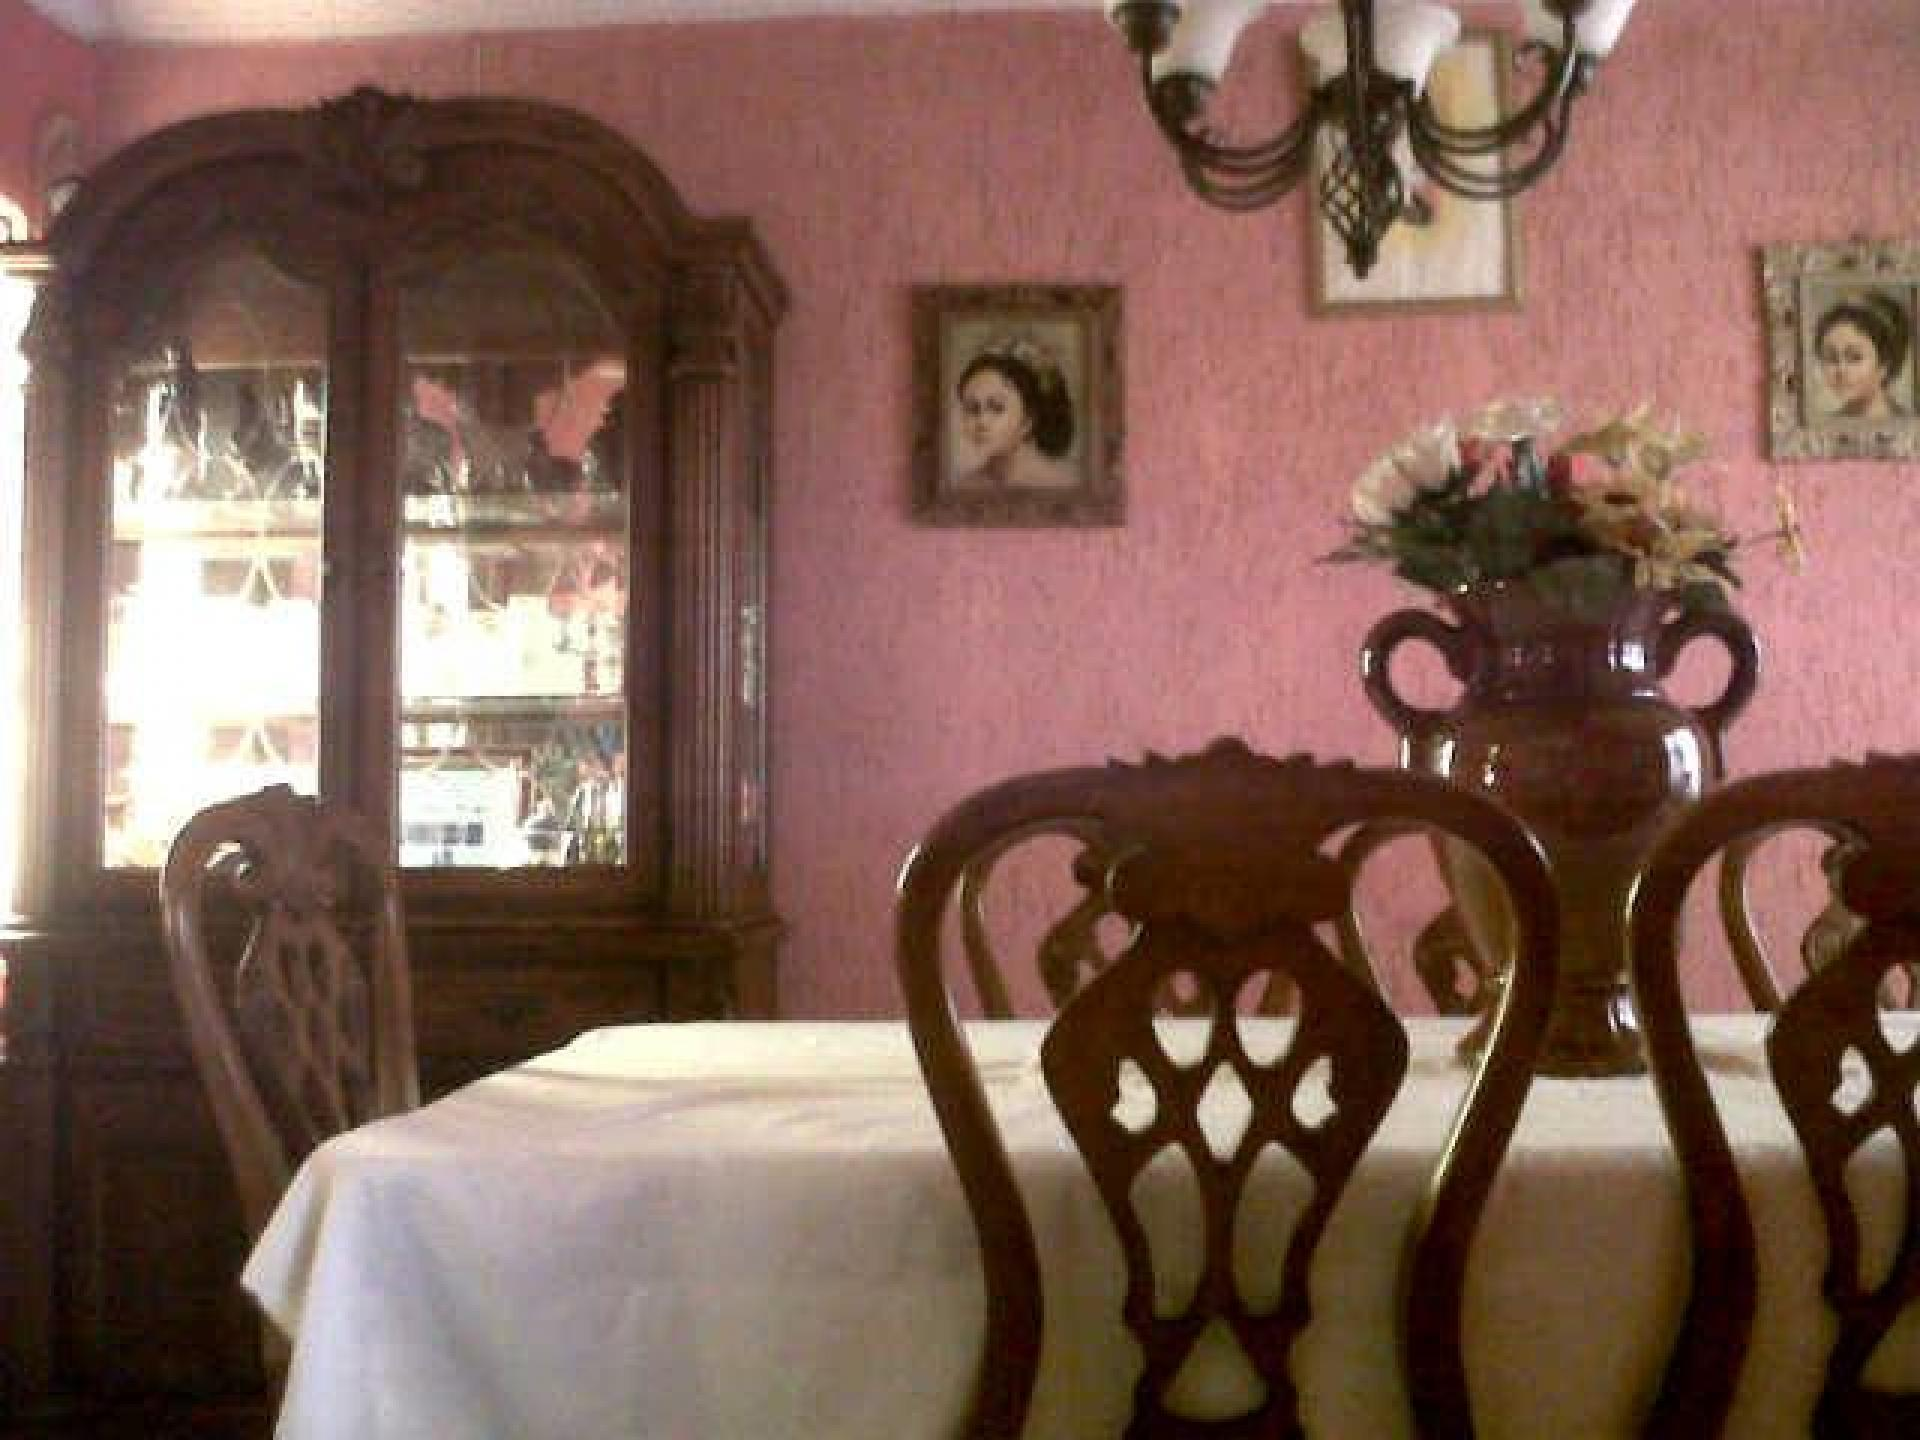 Dining Room of property in Dobsonville